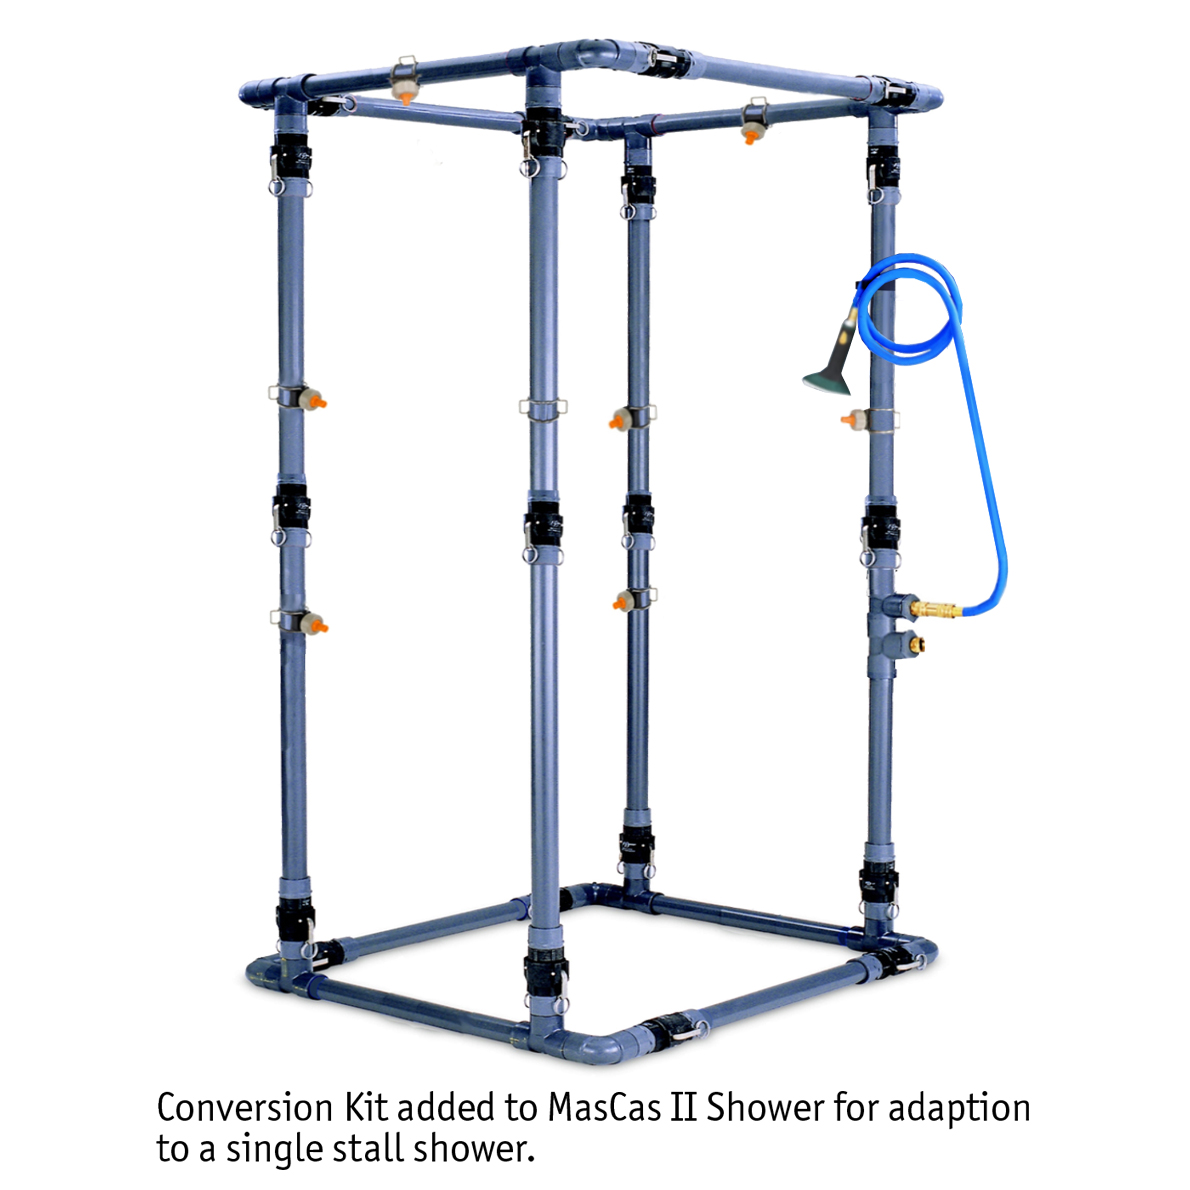 Single Stall Decon Shower Conversion Kit added image